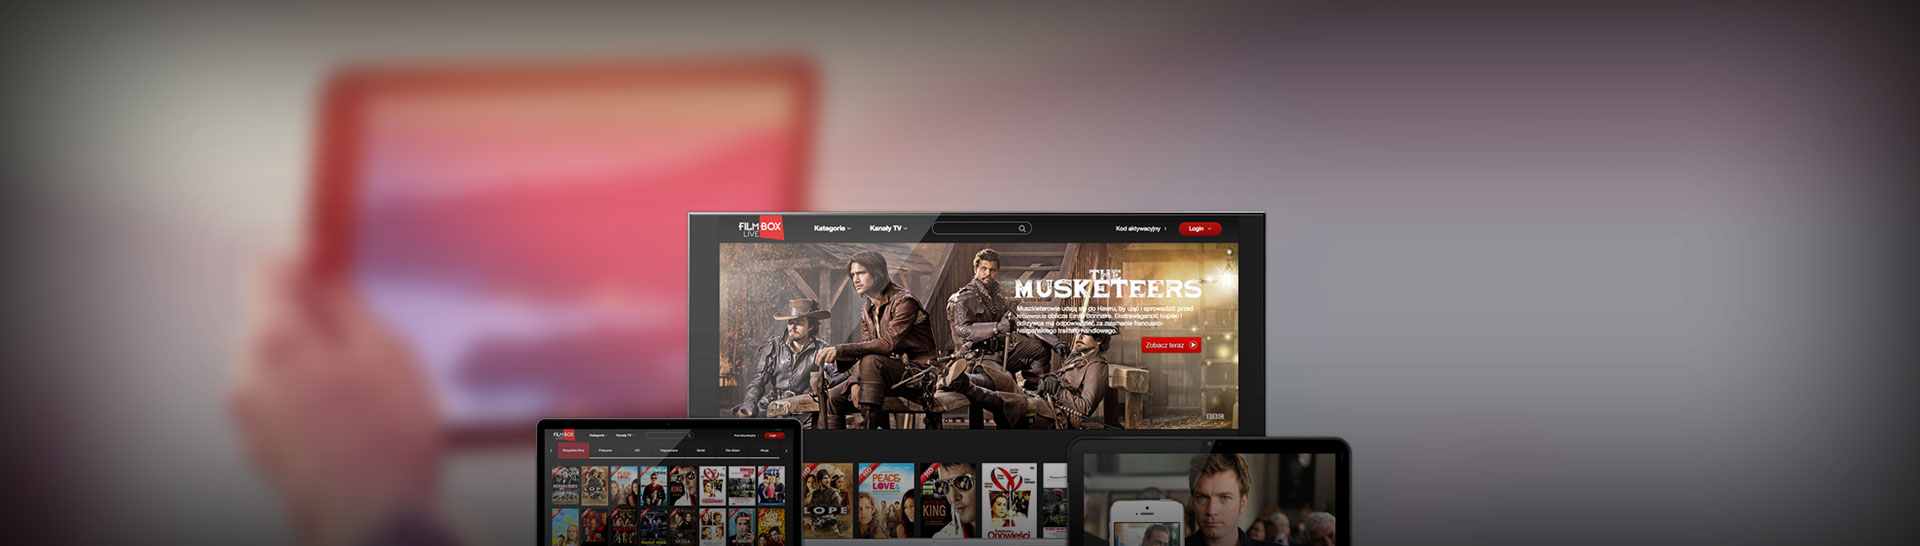 FilmBox Live offers one month free trial on LG Smart TV